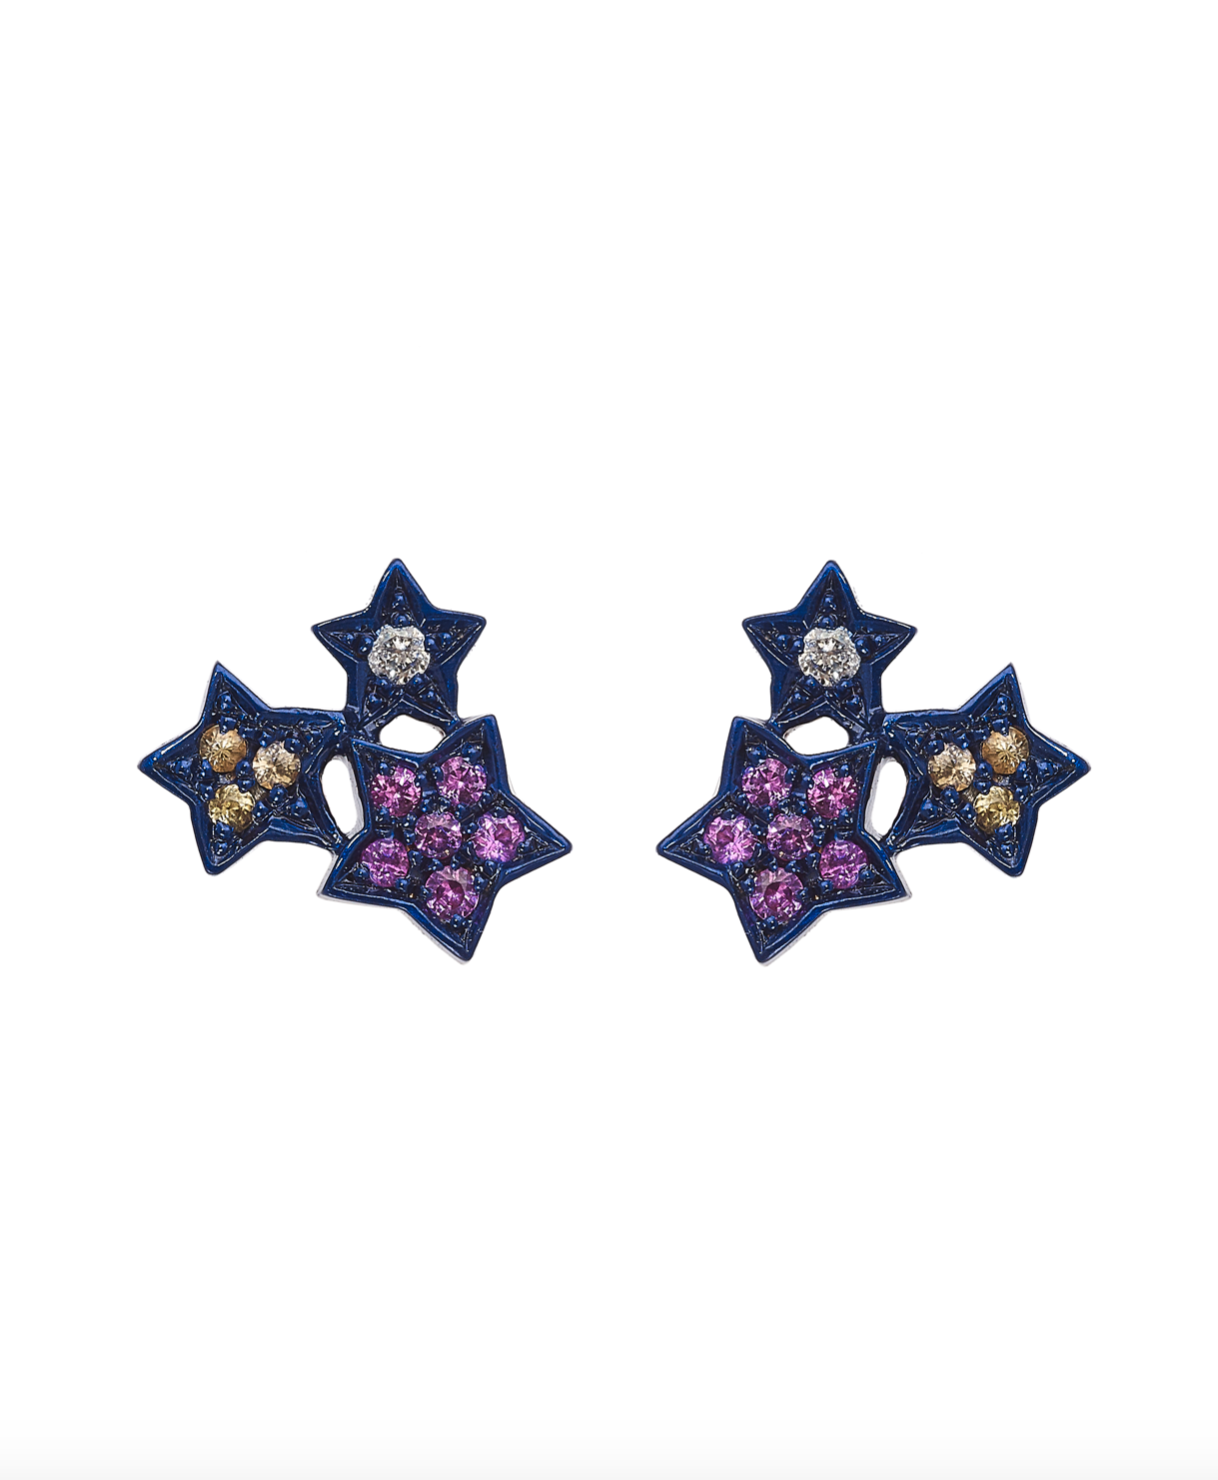 Midnight Colorful Star Cluster Earrings by Marmari on curated-crowd.com